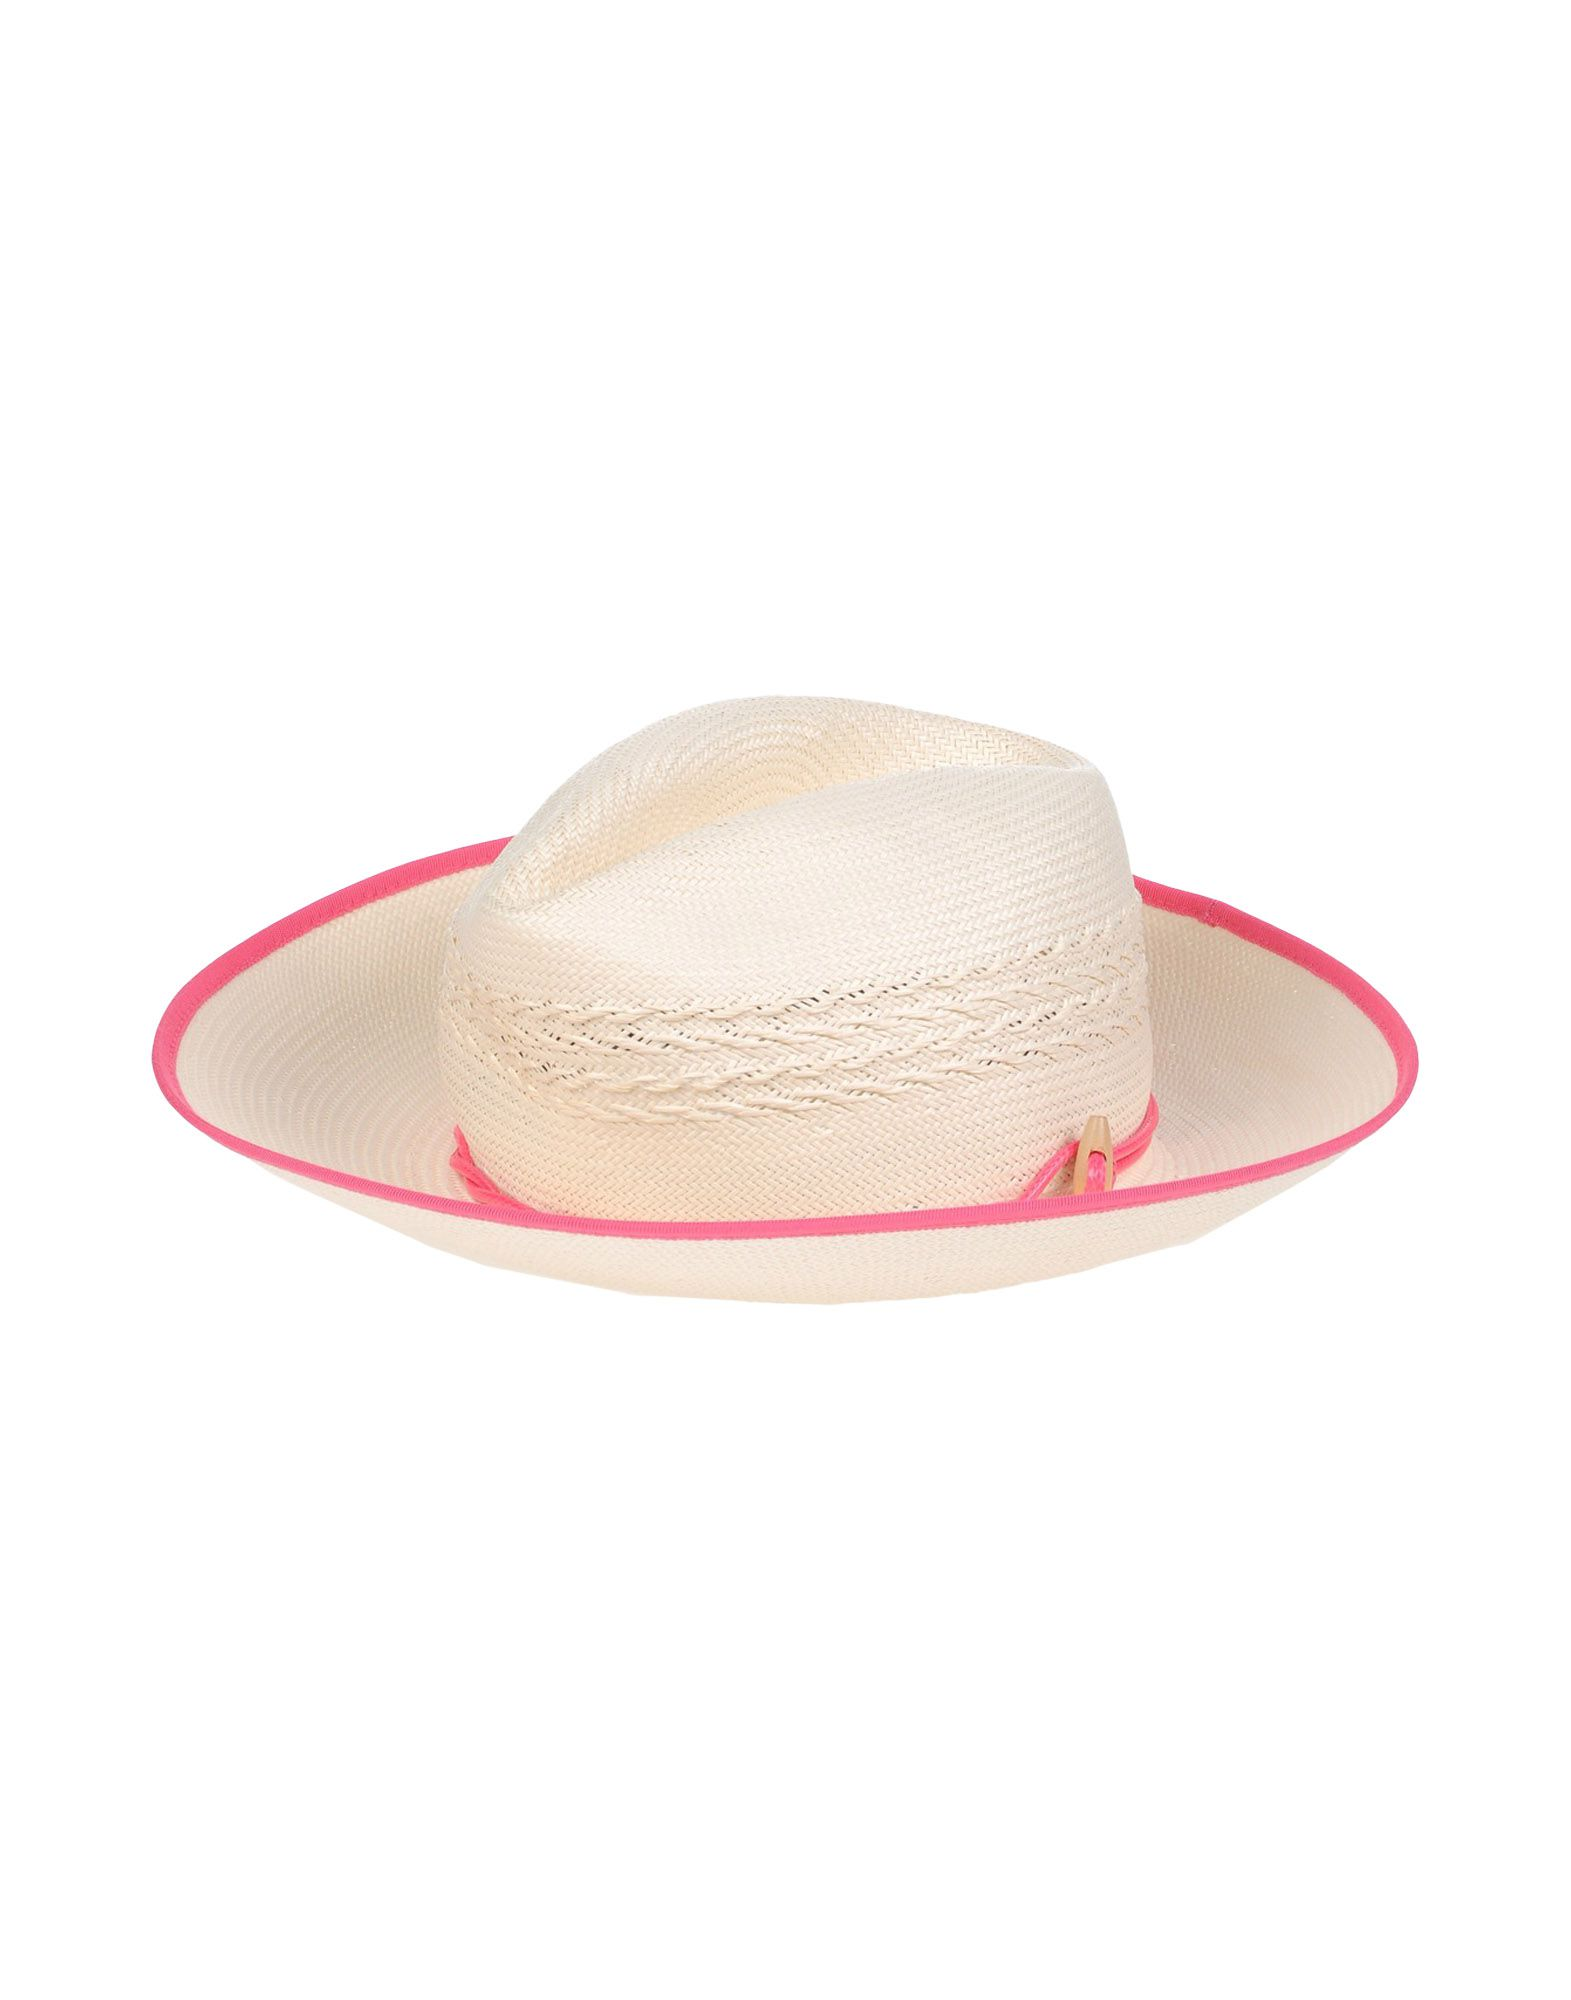 TRACY WATTS Hat in Ivory